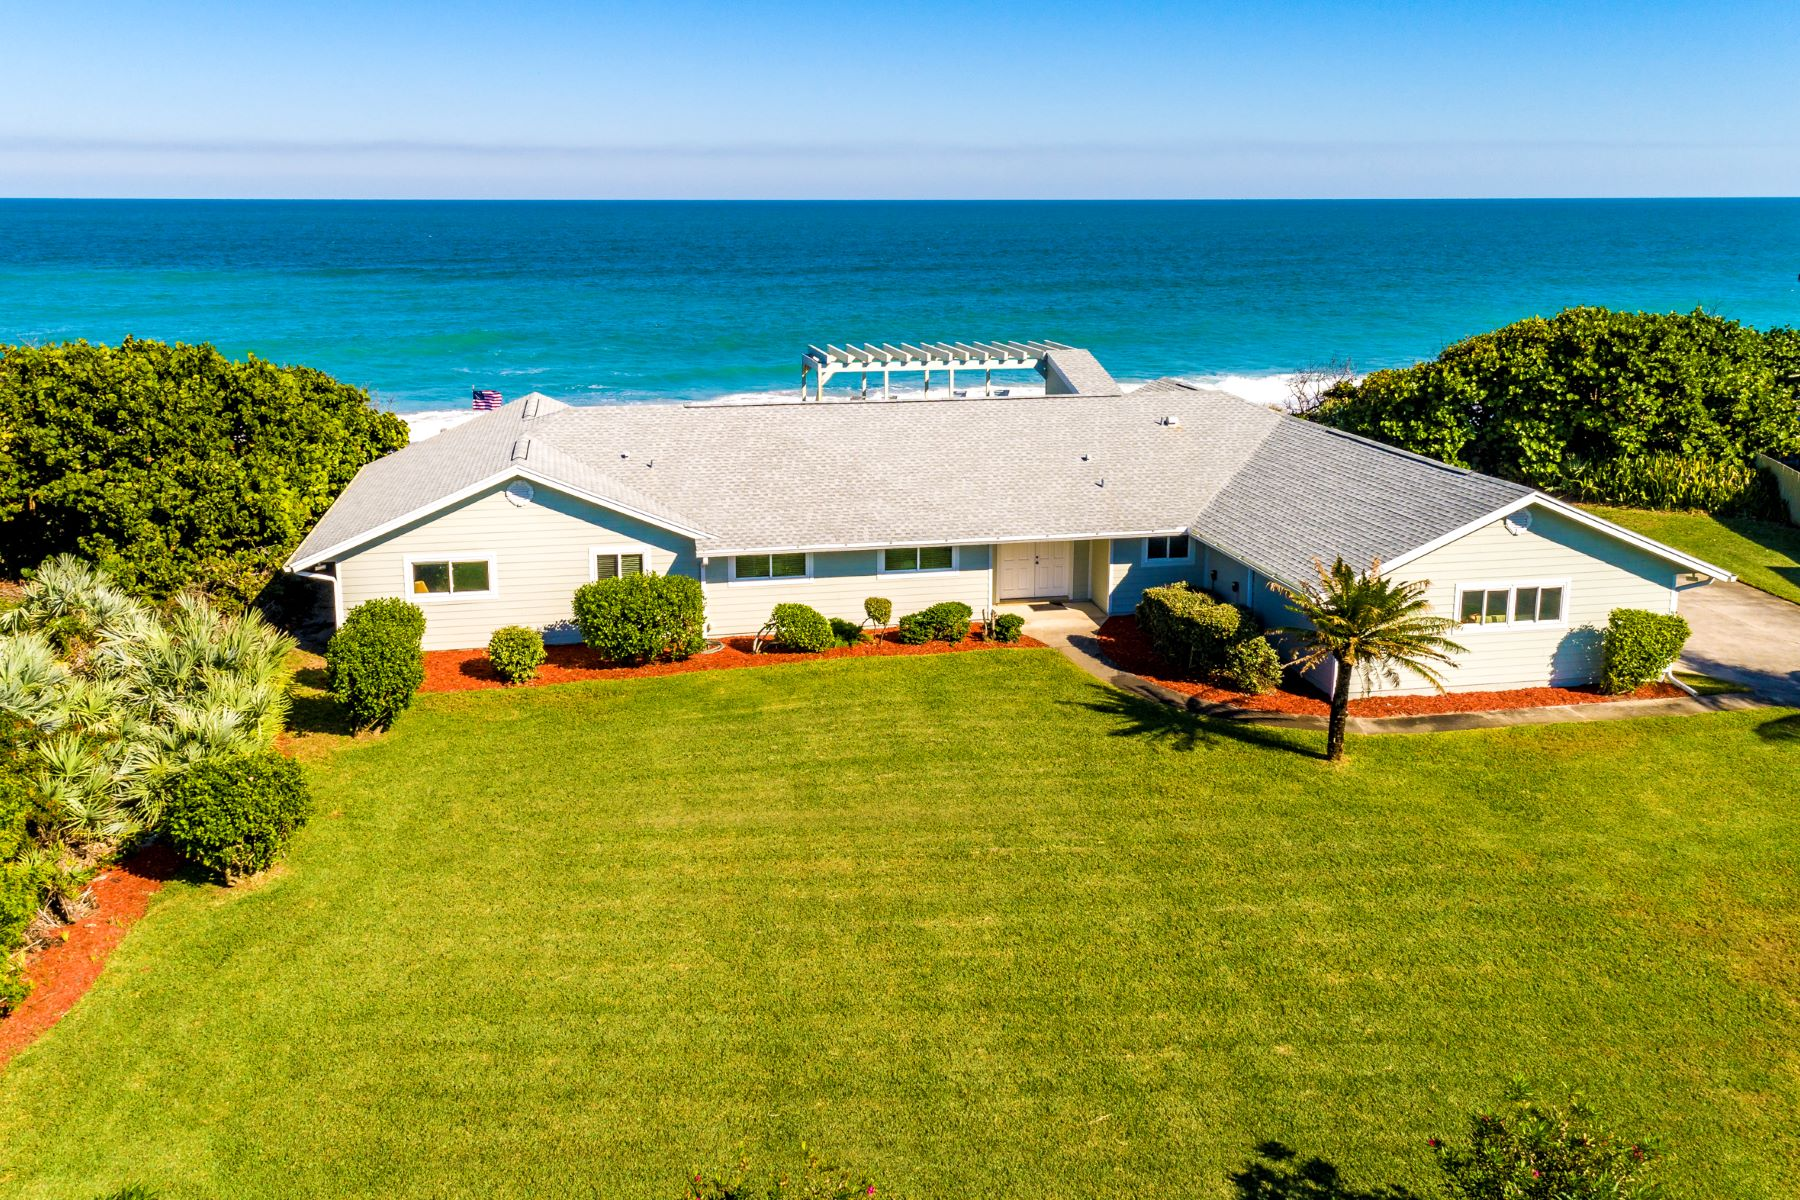 Property para Venda às Incredible Oceanfront Property with Over 135' of Direct Ocean frontage 3785 S Highway A1A Melbourne Beach, Florida 32951 Estados Unidos